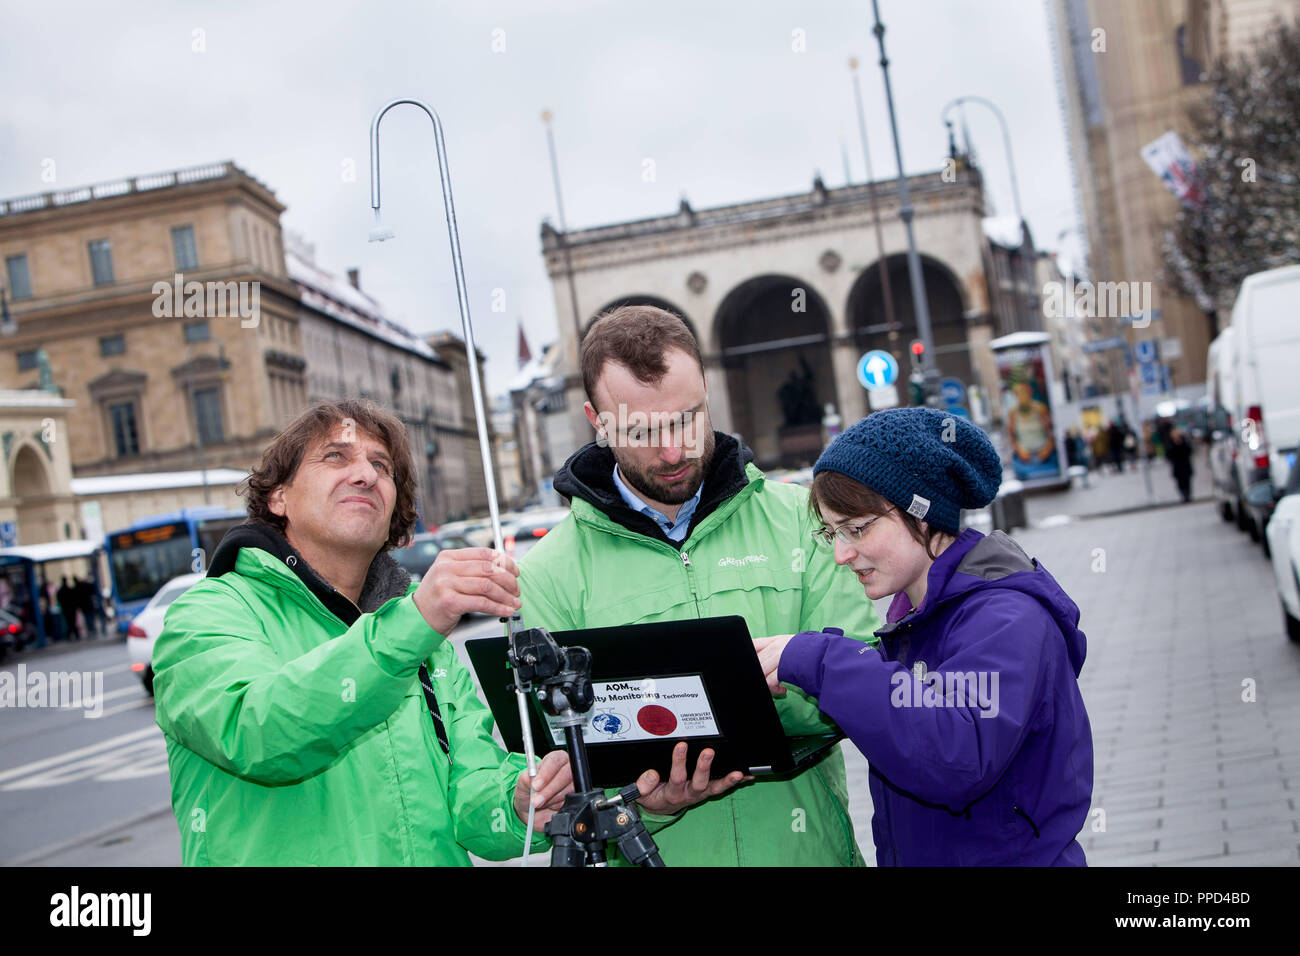 A team of scientists from the University of Heidelberg and activists of the environmental organization Greenpeace measures the pollution of air with nitrogen dioxide (NO2) at the Odeonsplatz in Munich. With these measurements, Greenpeace wants to increase the pressure on the city and the free state to take effective measures for air pollution. - Stock Image